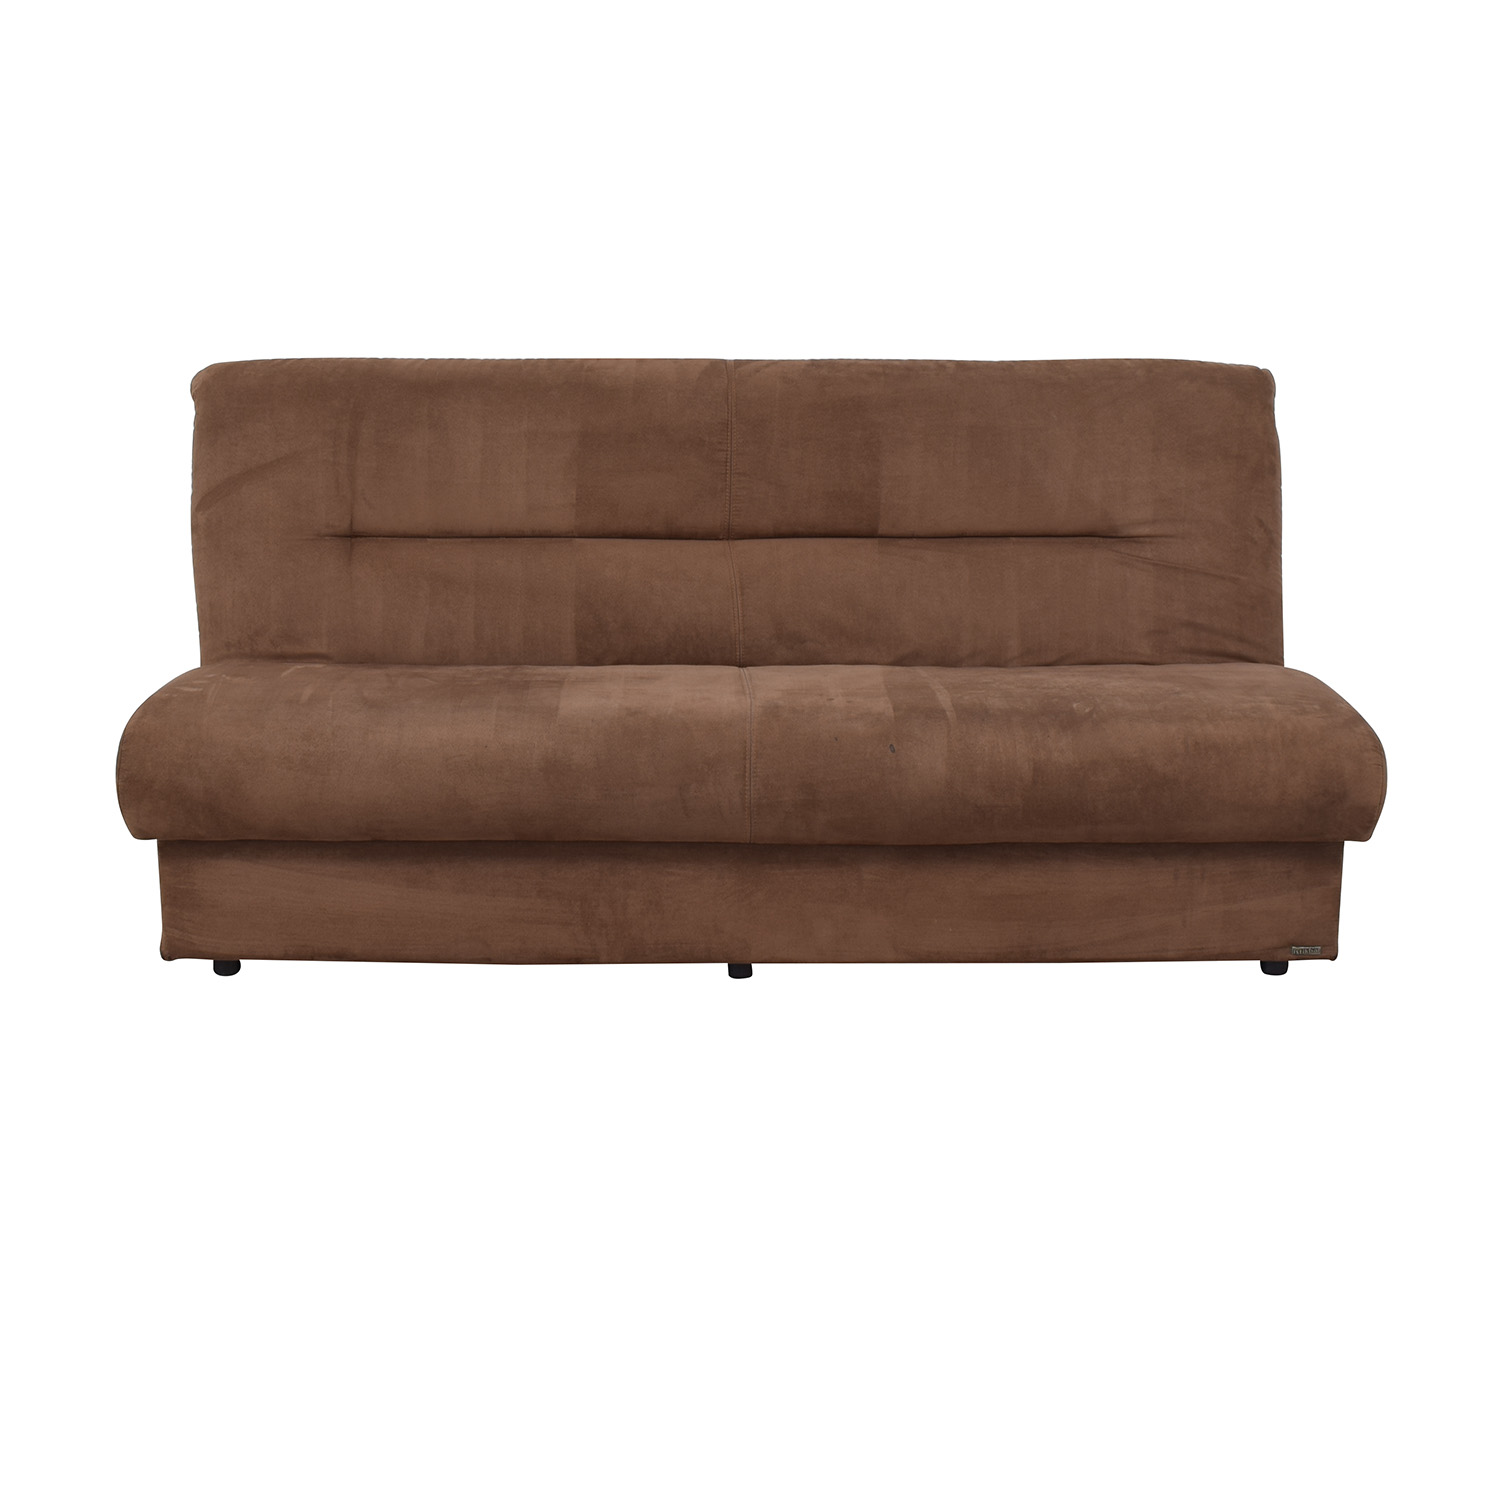 buy Istikbal Furniture Regata Diego Convertible Full Sofa Bed Istikbal